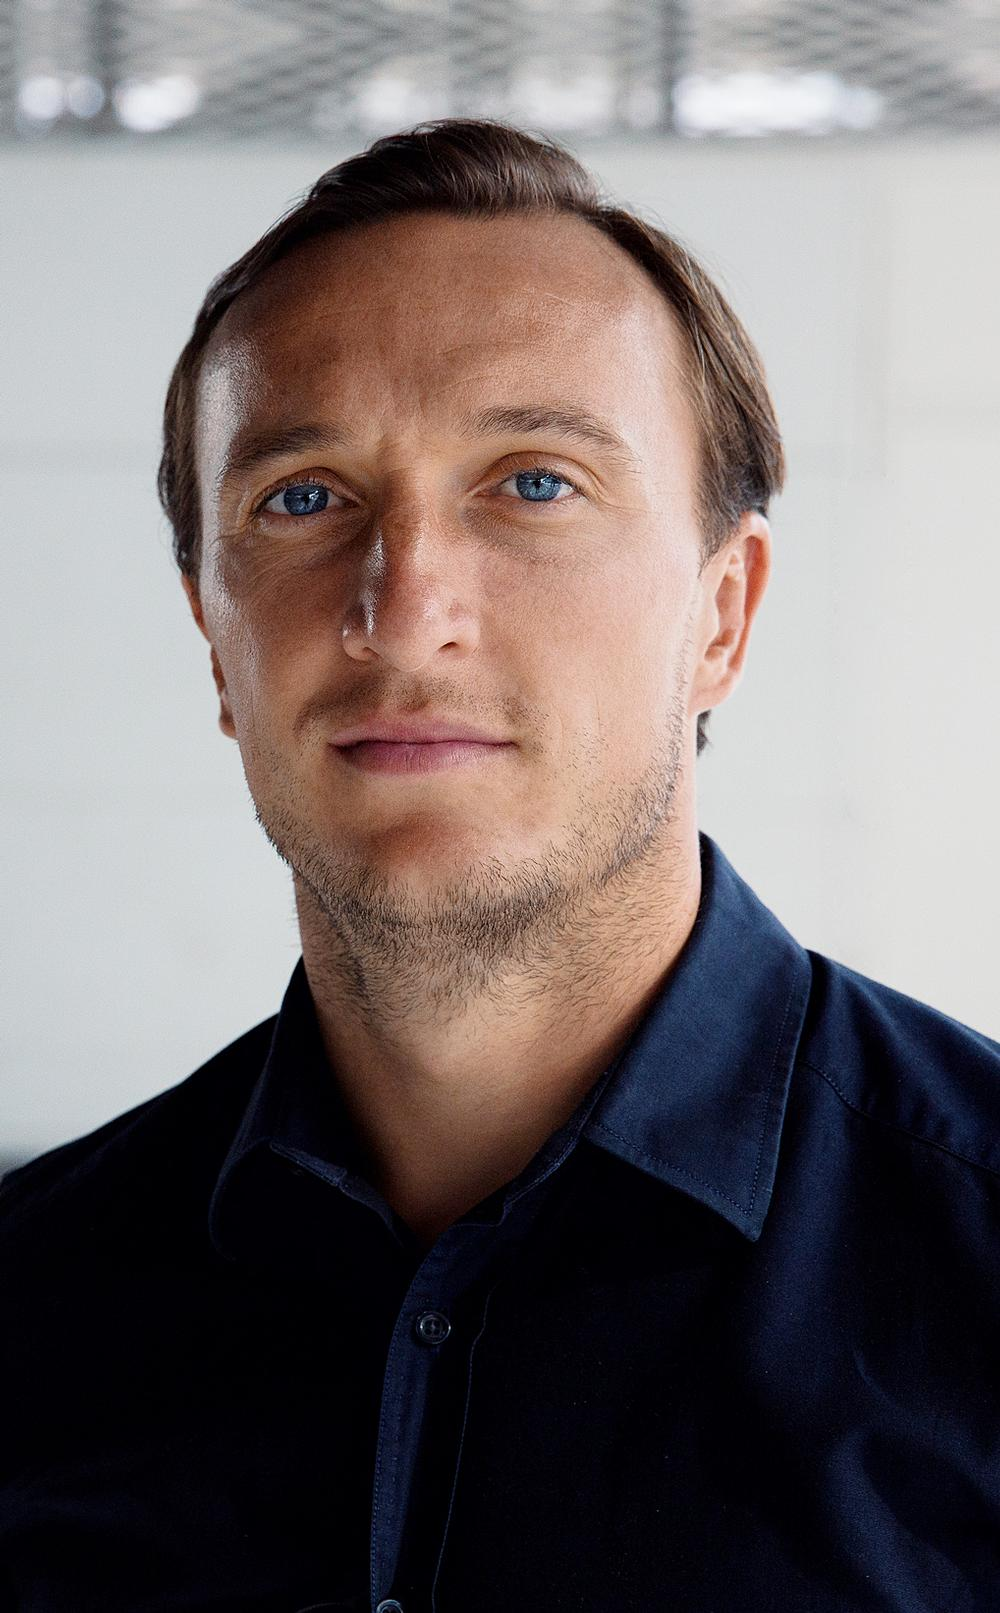 West Ham captain Mark Noble has given his support to the ambitious project / portraits by Jake Ratcliffe